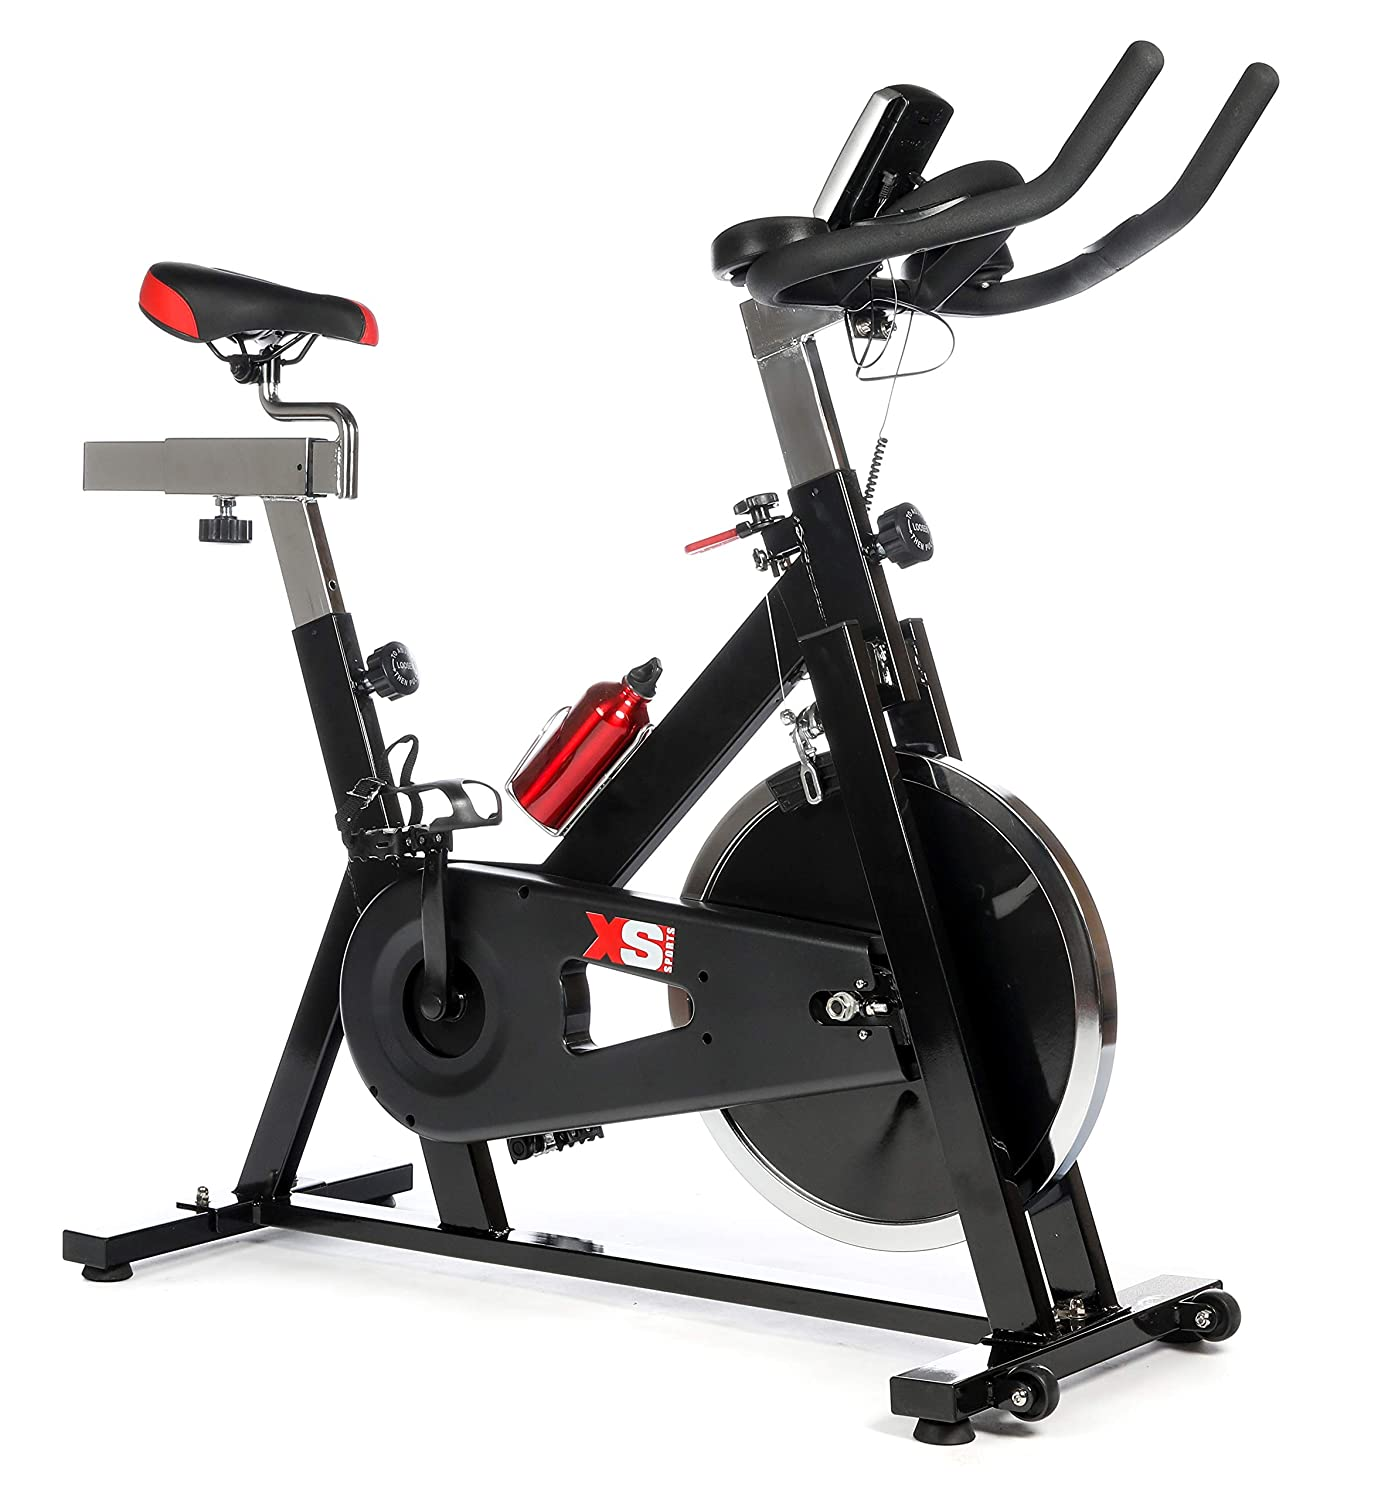 c462b1a31c4 XS Sports XS012 Exercise Bike - Aerobic Equipment - Upright Indoor Cycling  Trainer Machine with 15kg Spinning Flywheel for Cardio Workout with full ...